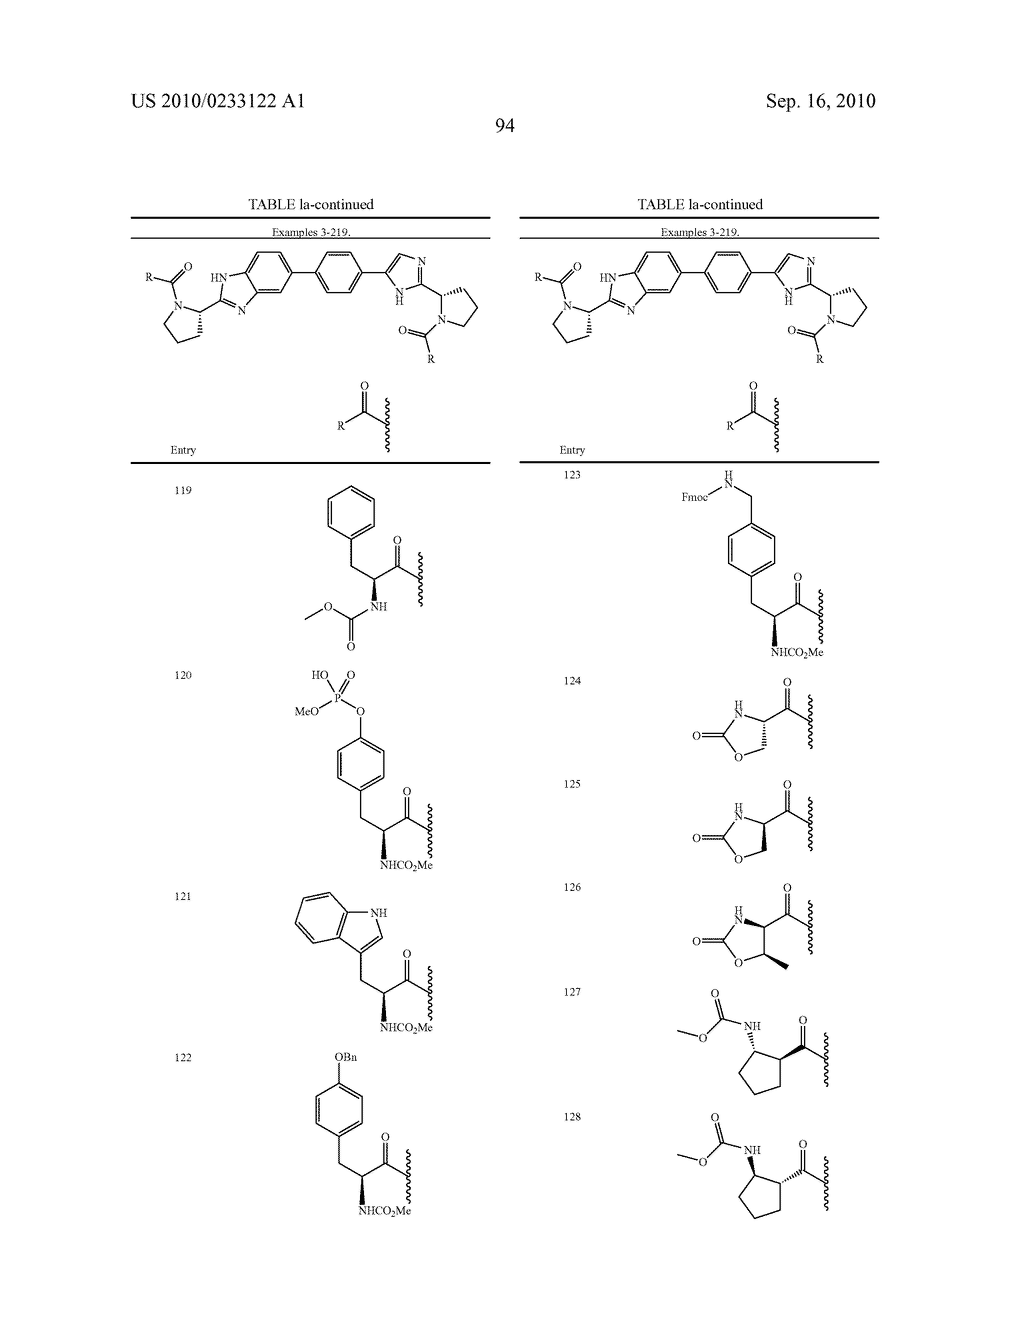 NOVEL BENZIMIDAZOLE DERIVATIVES - diagram, schematic, and image 95